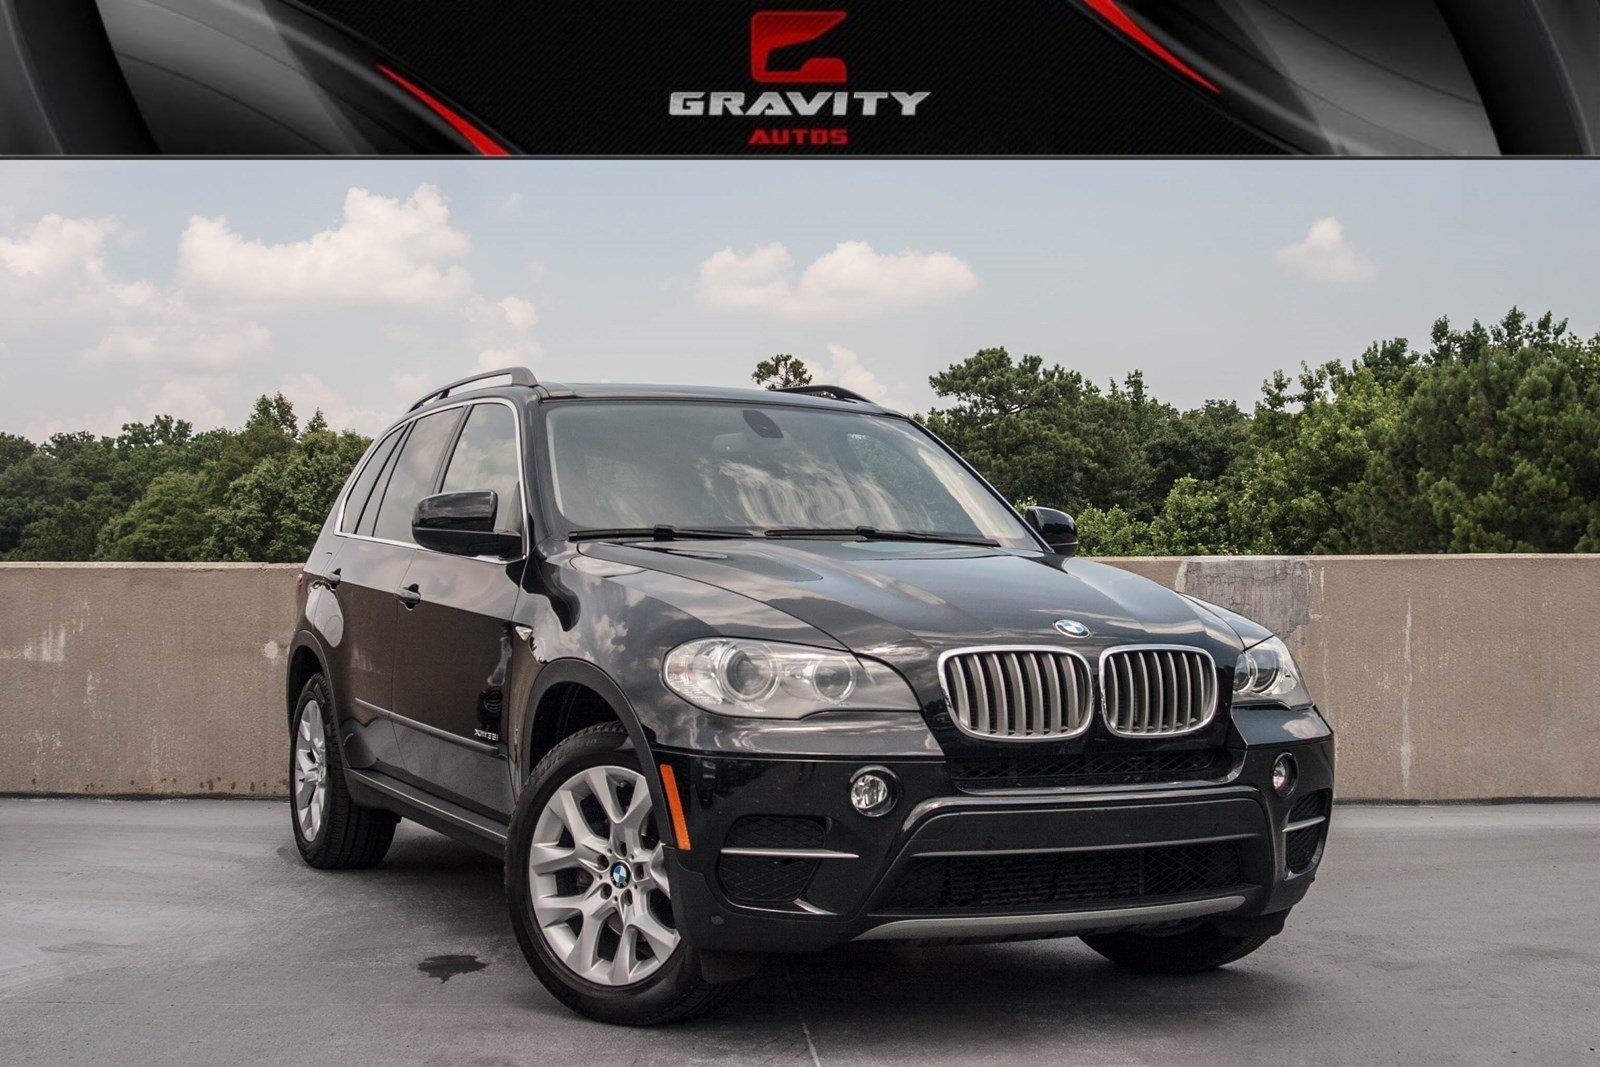 2013 Bmw X5 Xdrive35i Stock B15528 For Sale Near Sandy Springs Ga Trailer Wiring Used